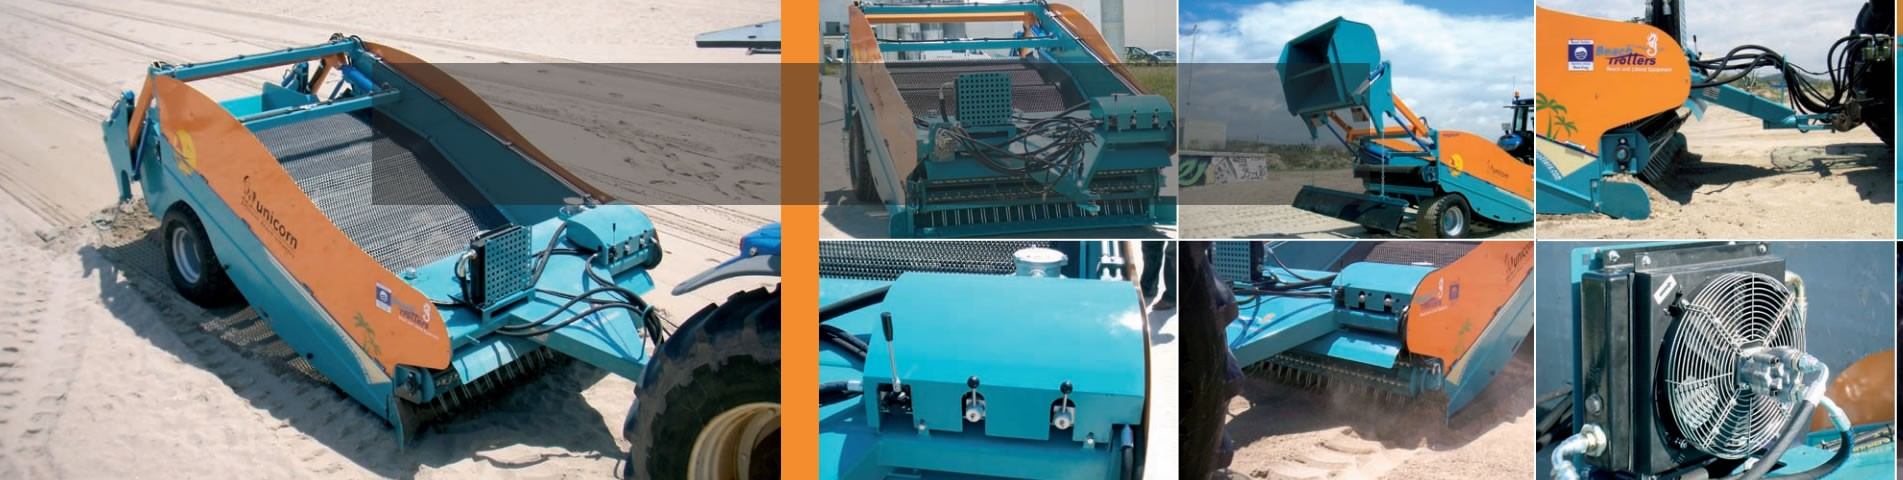 Beach Cleaner Machines